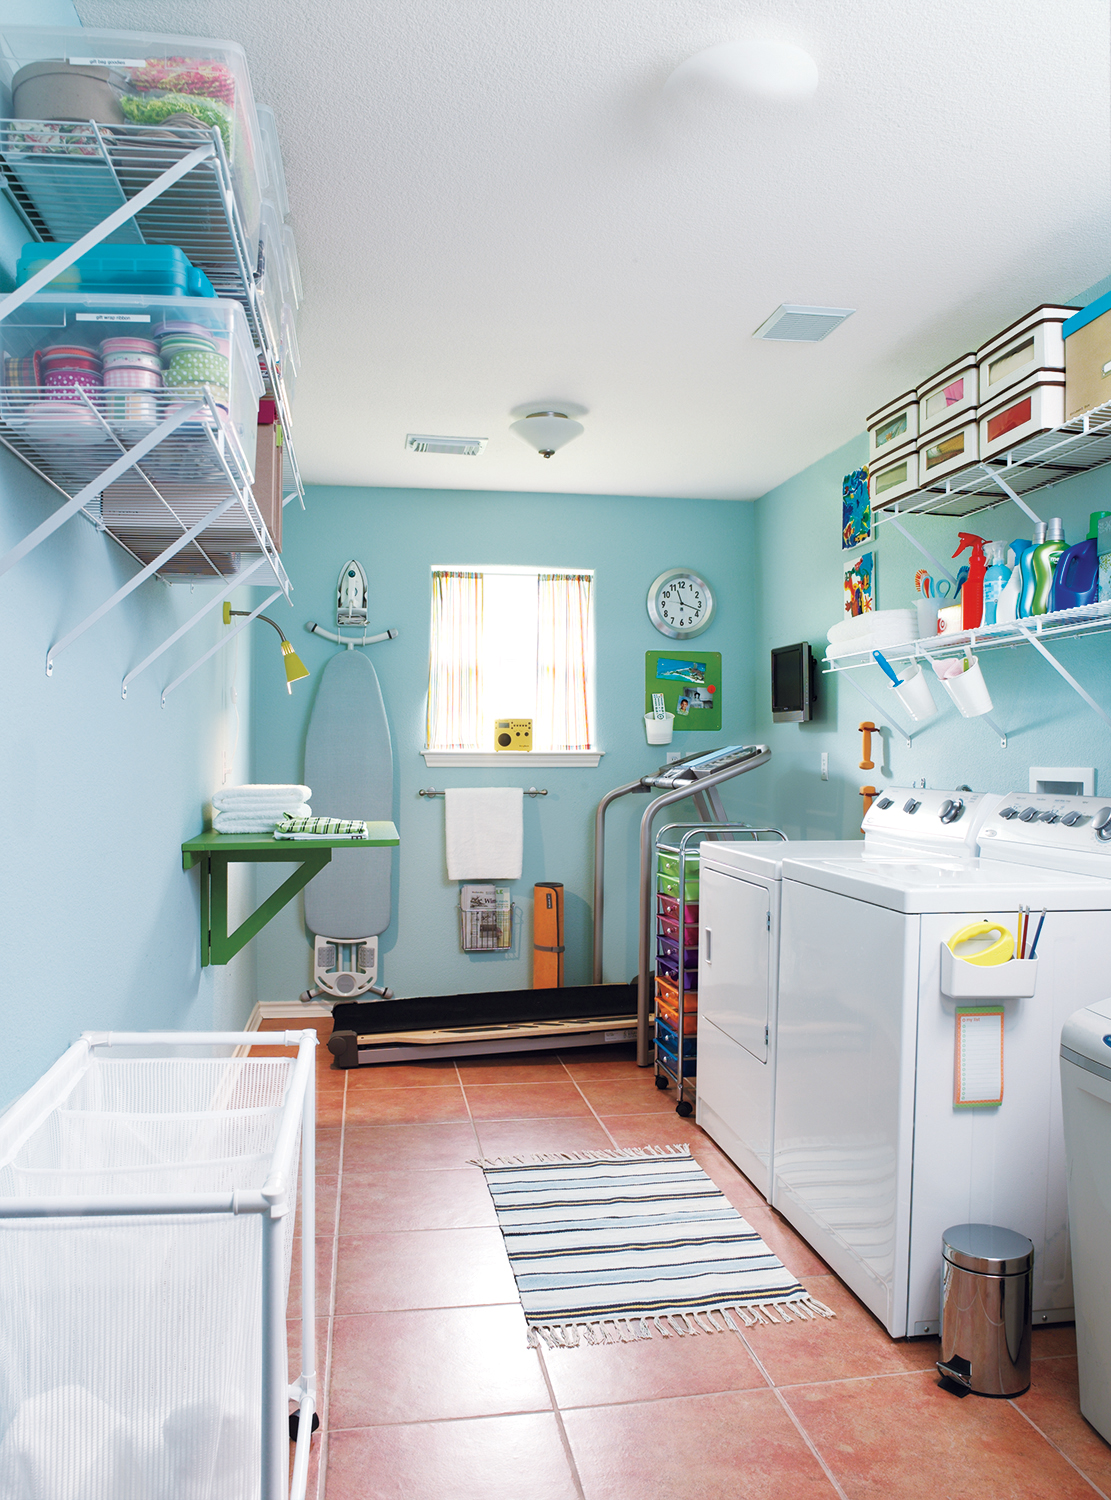 Room Makeovers 16 before-and-after room makeovers | real simple